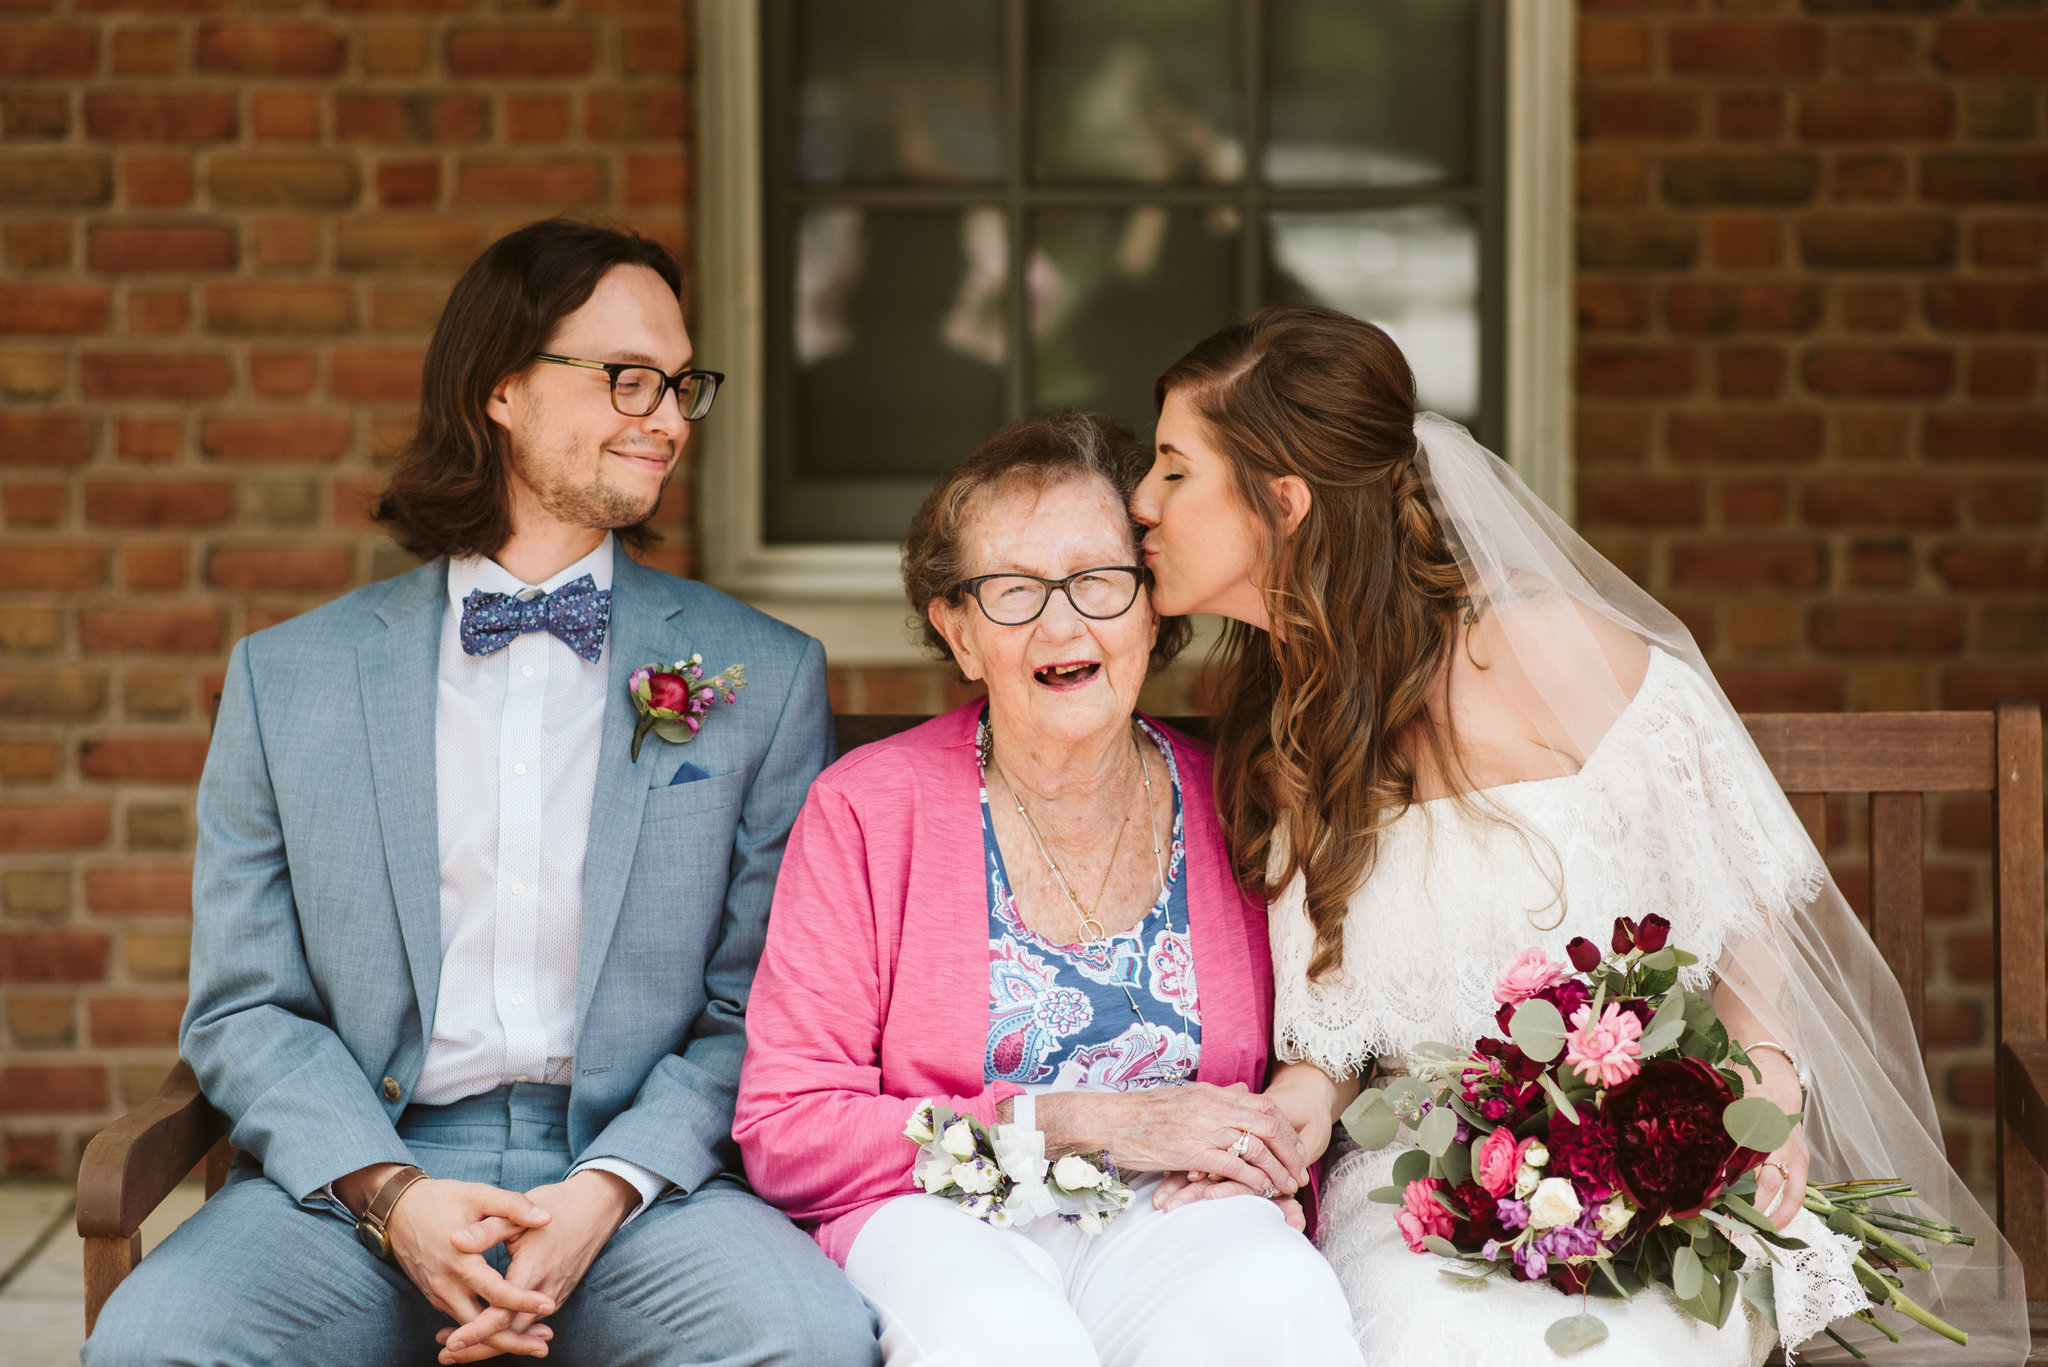 Annapolis, Quaker Wedding, Maryland Wedding Photographer, Intimate, Small Wedding, Vintage, DIY, Sweet photo of Bride and Groom with Grandmother